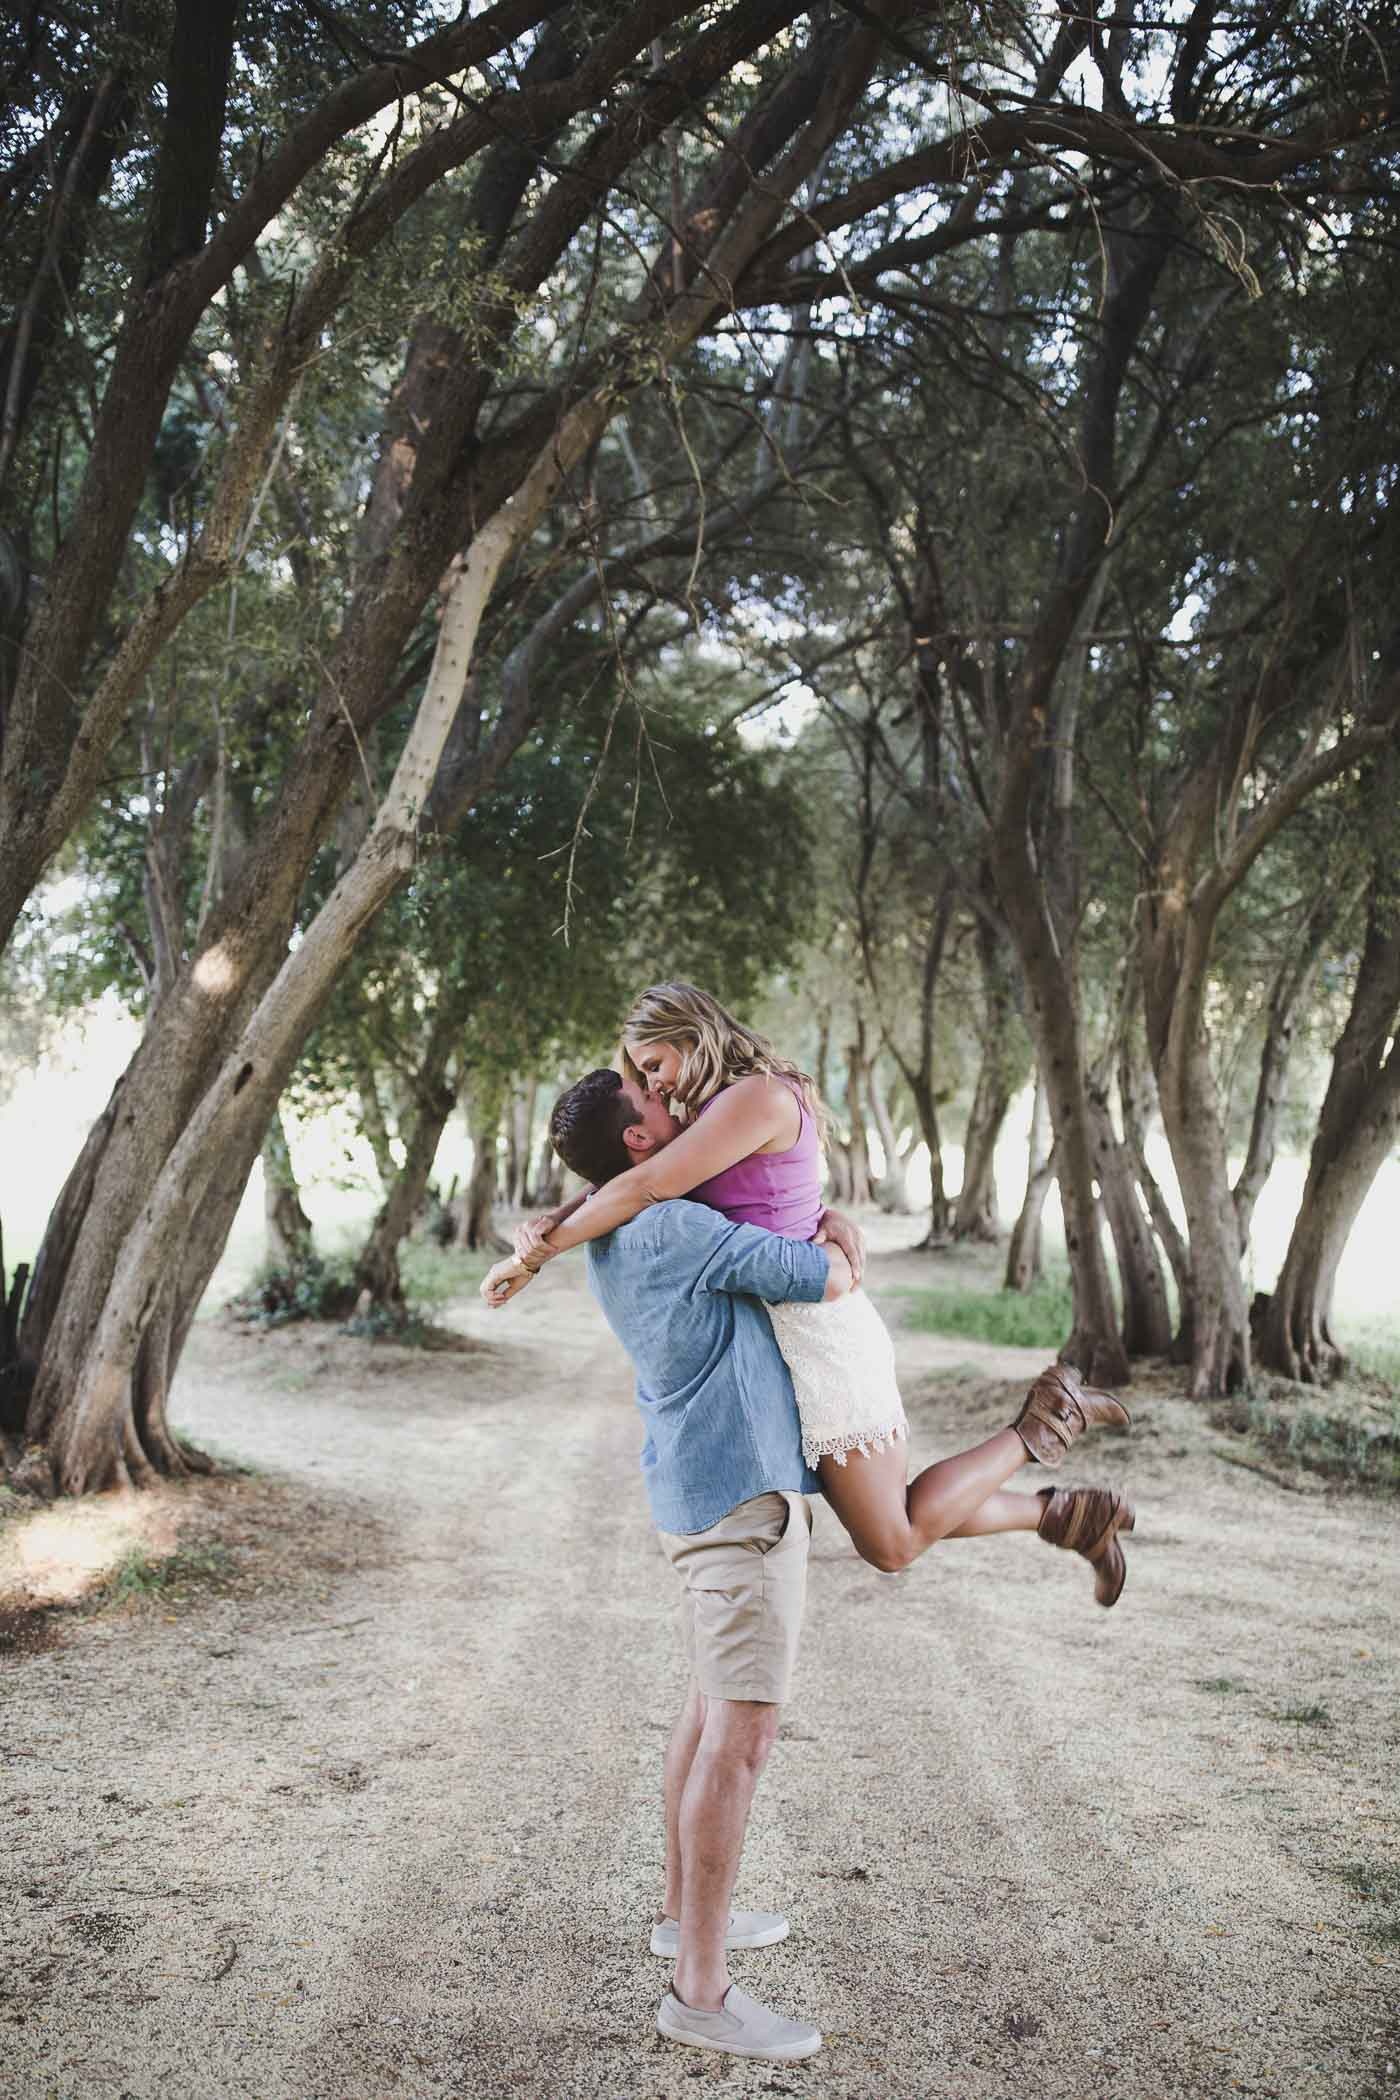 AVH_Photography_upper_bidwell_park_engagement_photography_chico_california_spring_bidwell_golf_course_0013.jpg